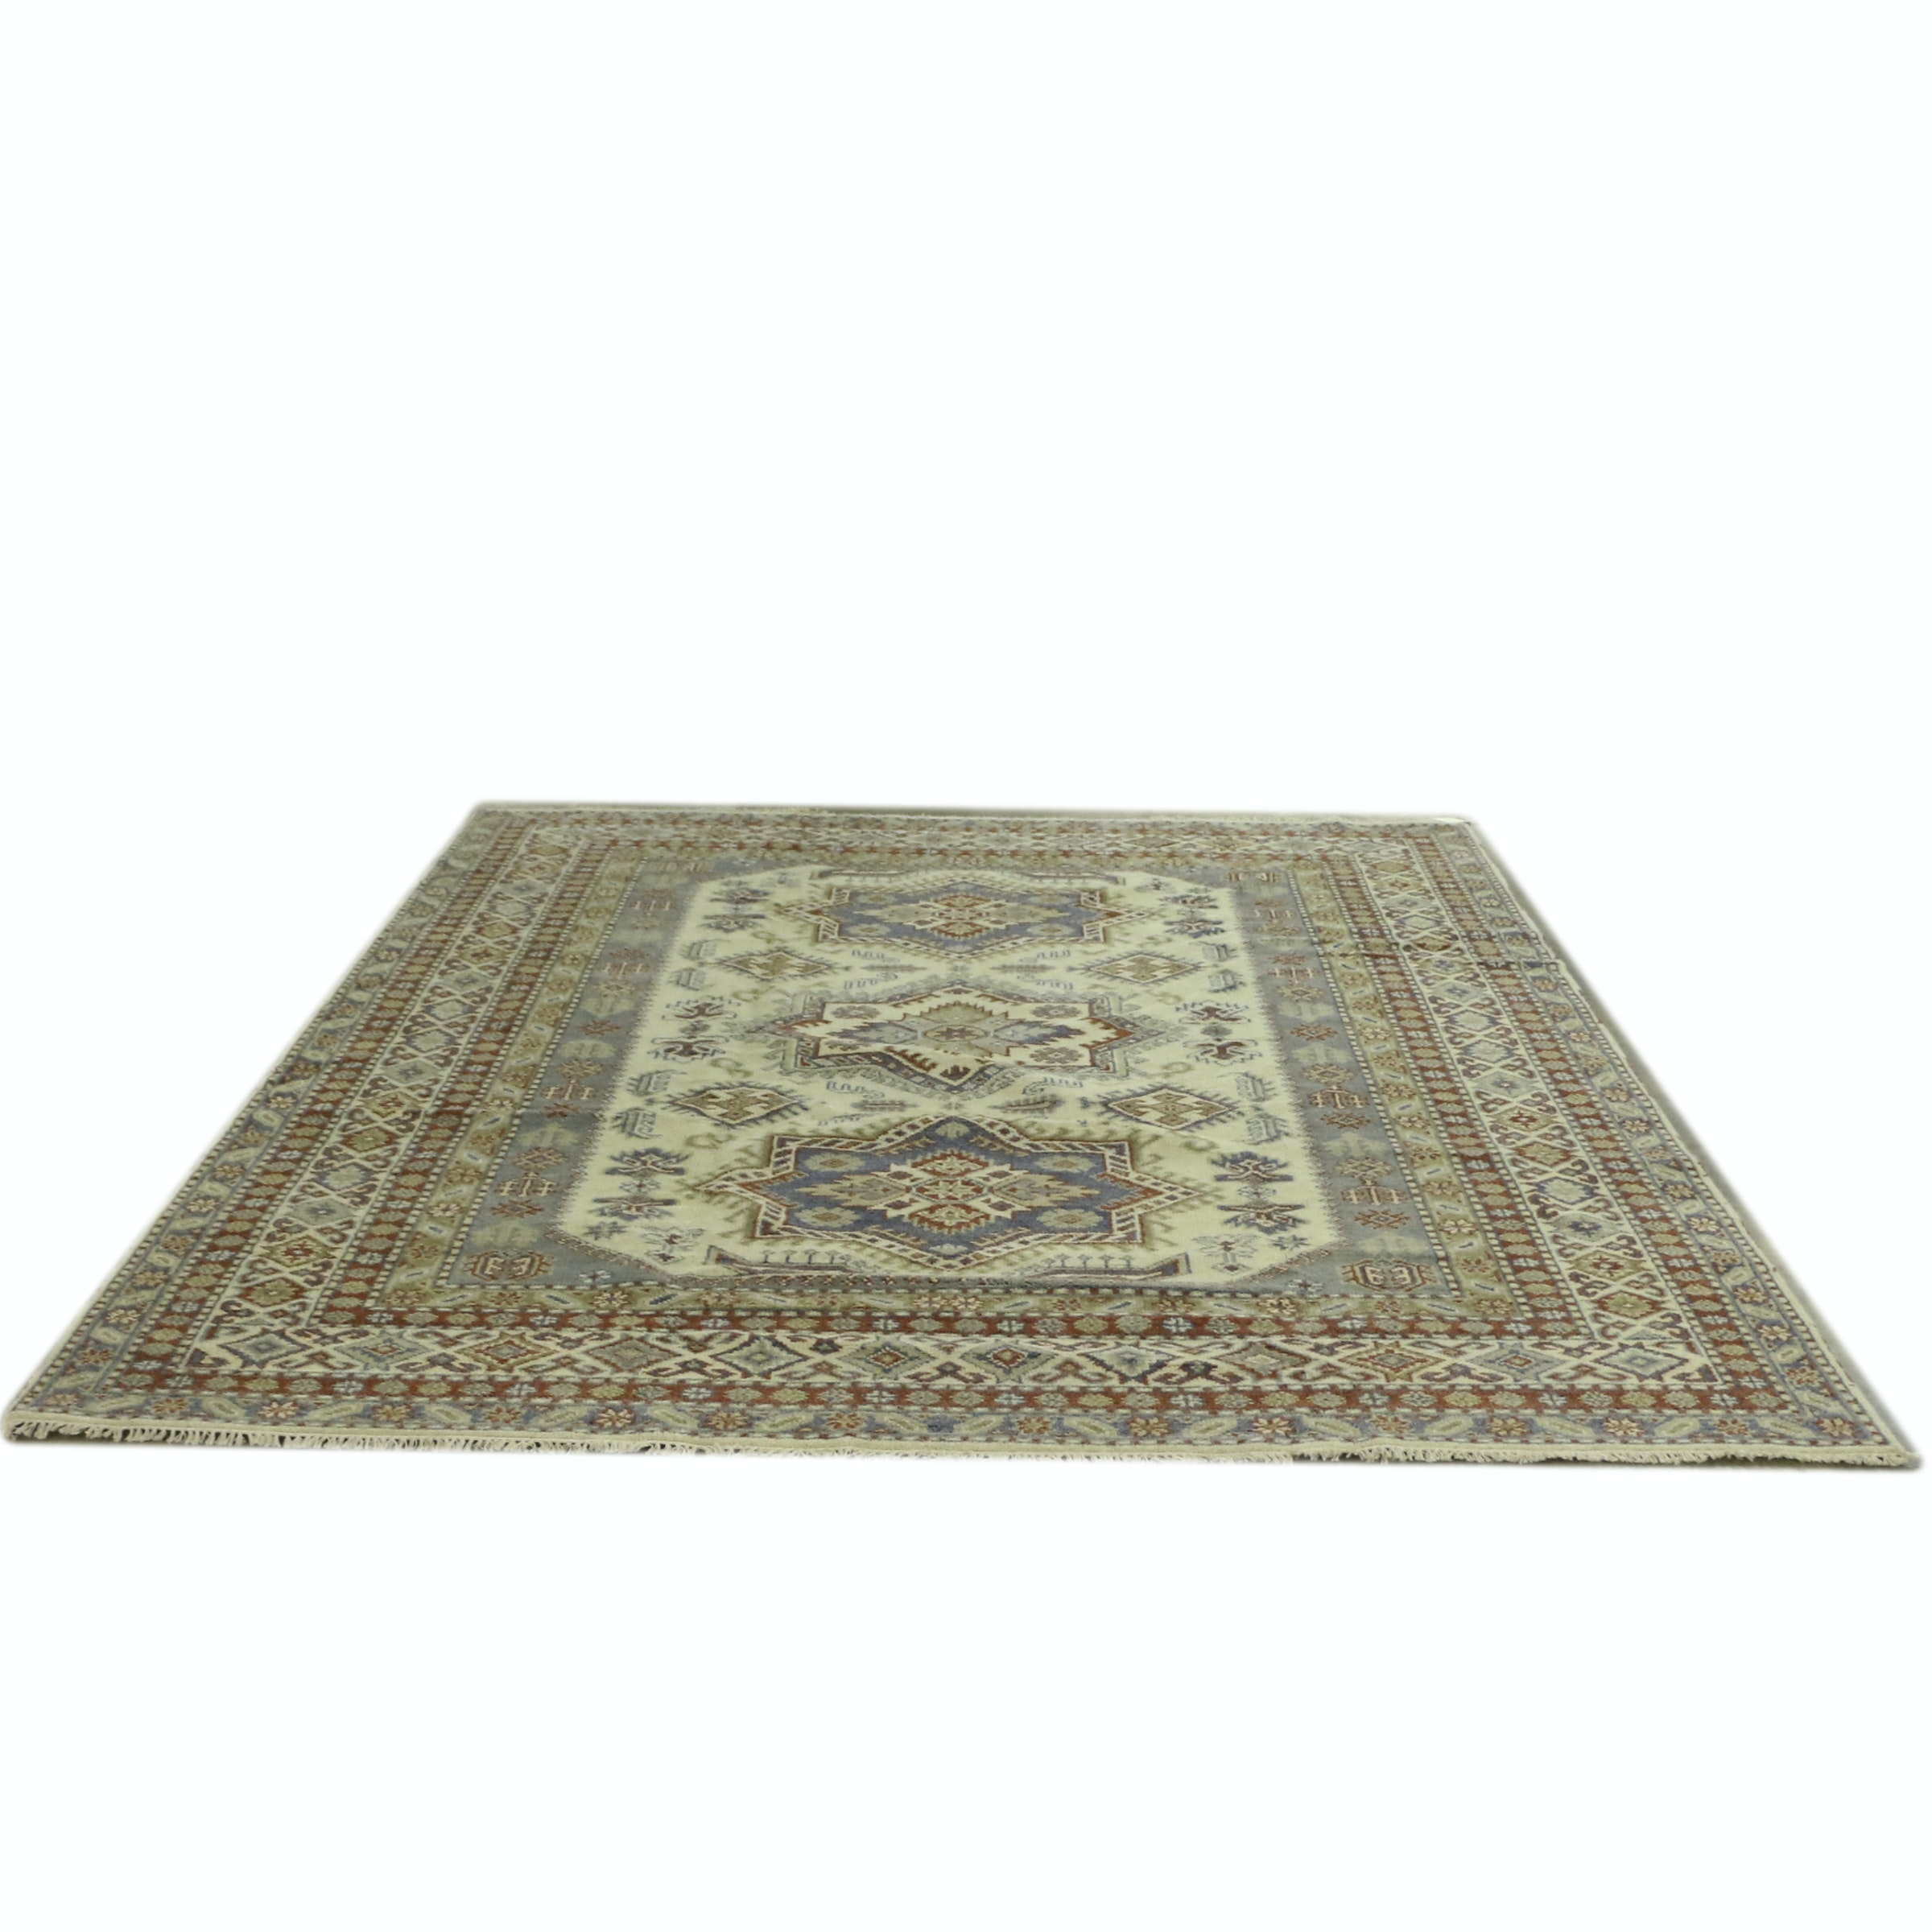 Hand-Knotted Indo-Kazak Wool Room Sized Rug